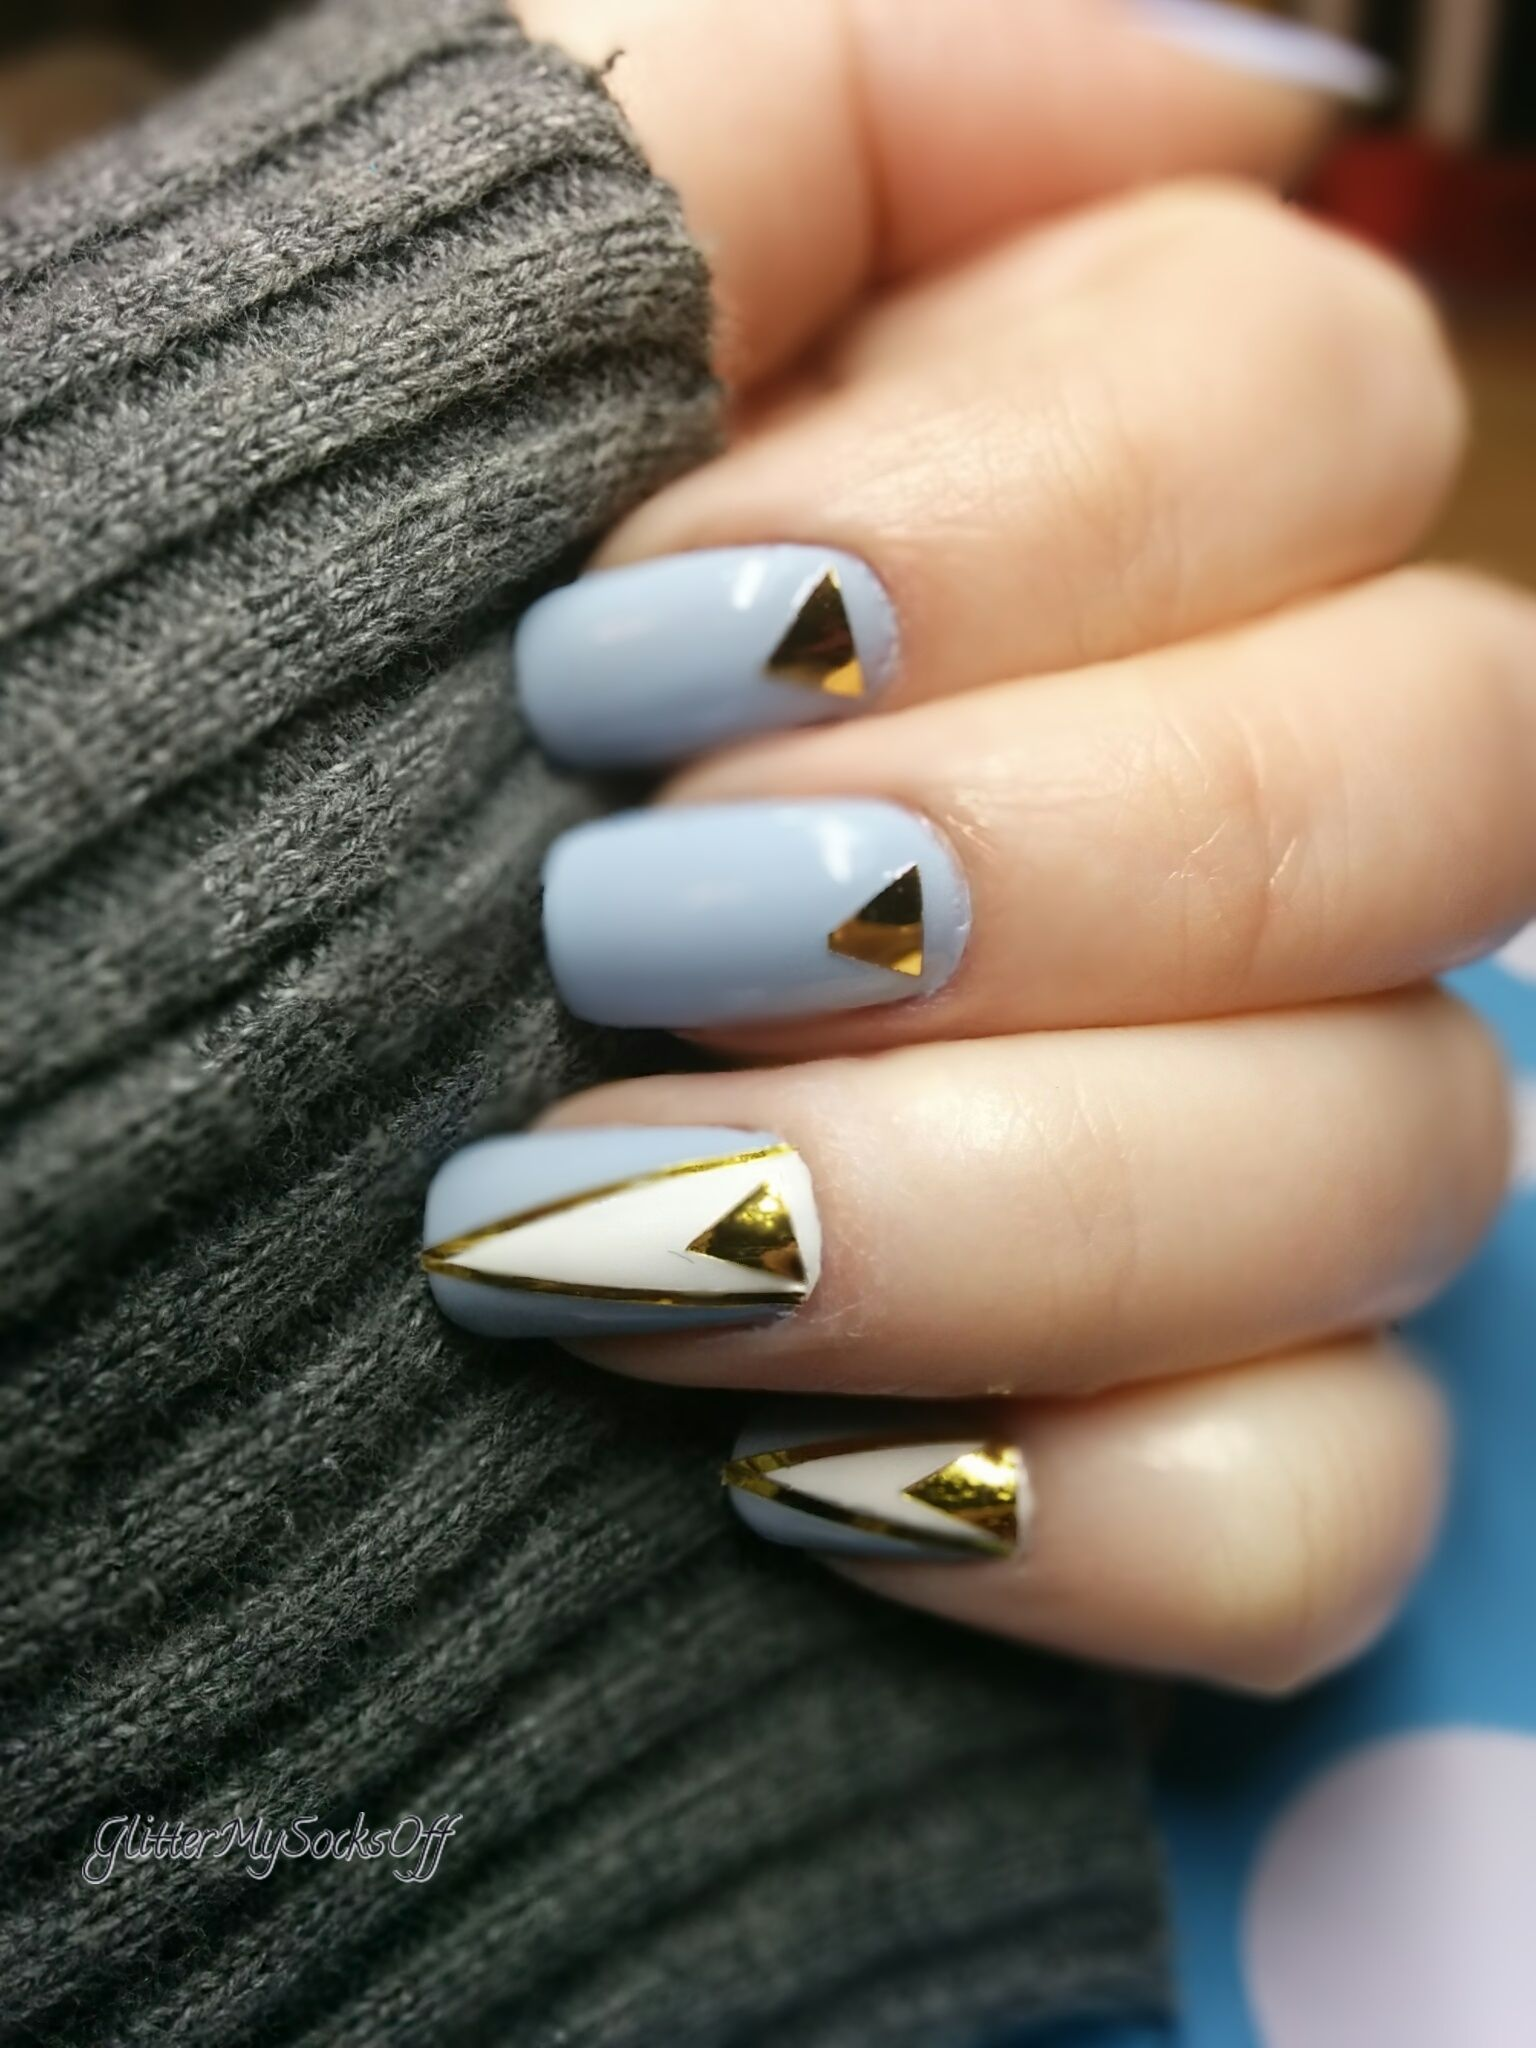 Light blue nails with triangle nail art in white and gold